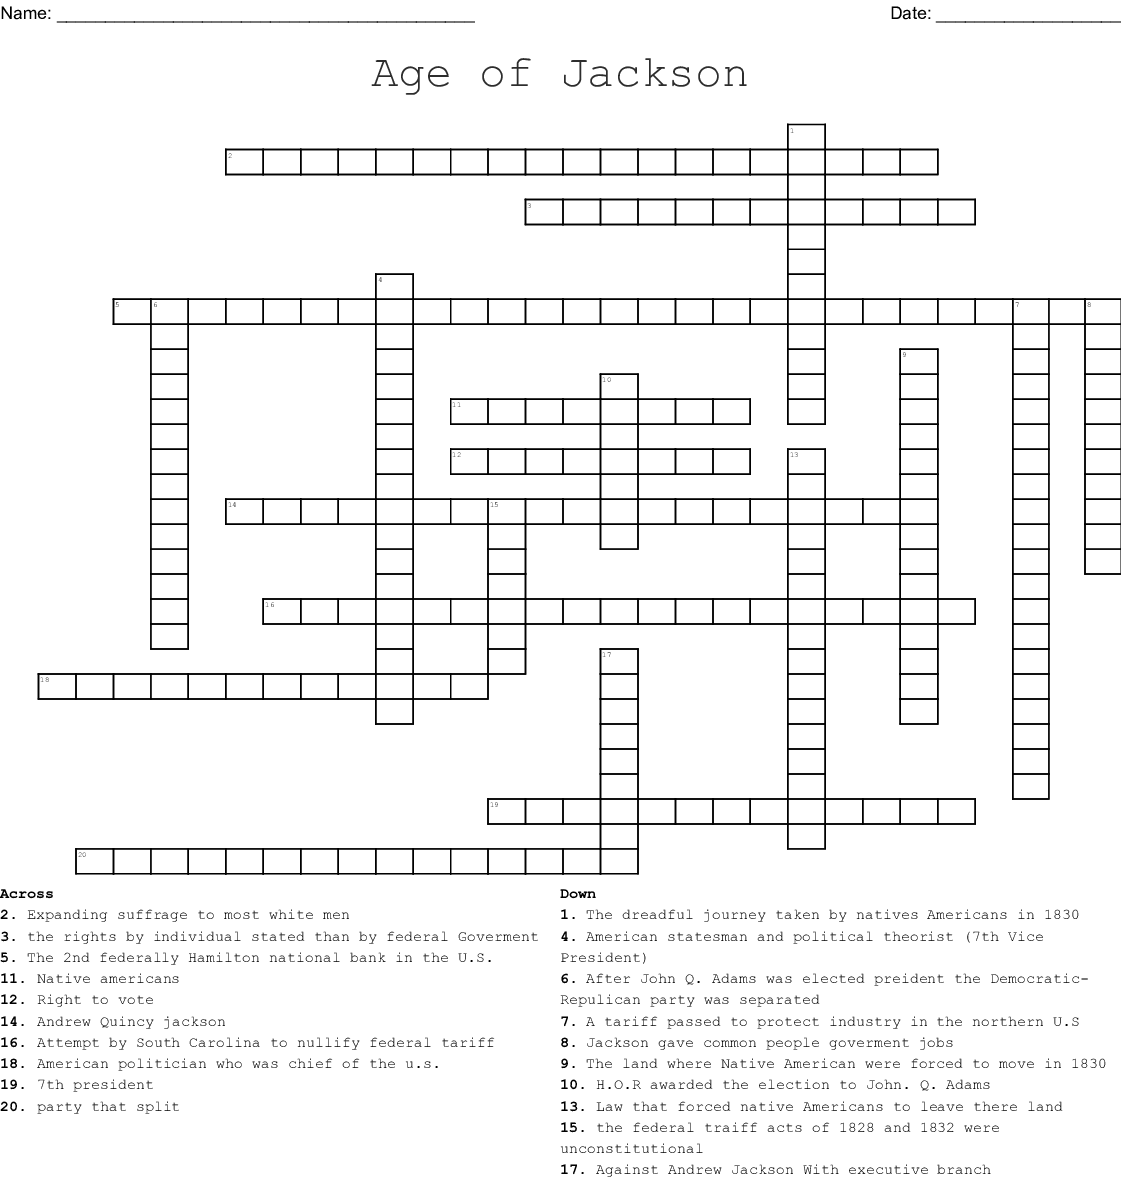 The Age Of Jackson Crossword - WordMint